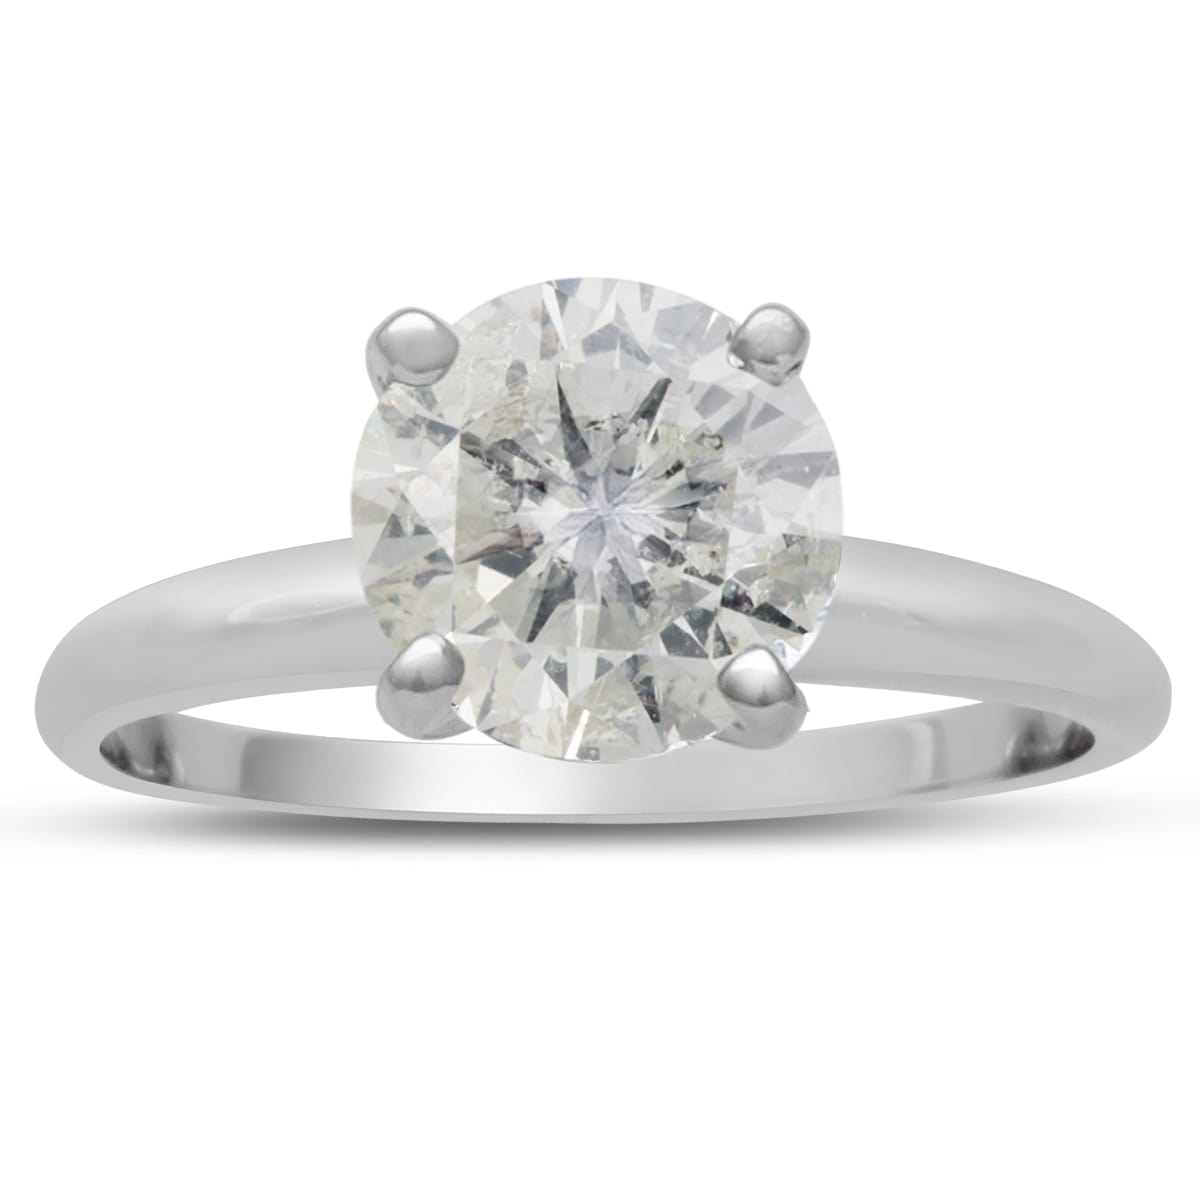 250 Carat Round Cut Diamond Solitaire Engagement Ring, Hi Color, I1i2  Clarity Item Number: Jwl 12583